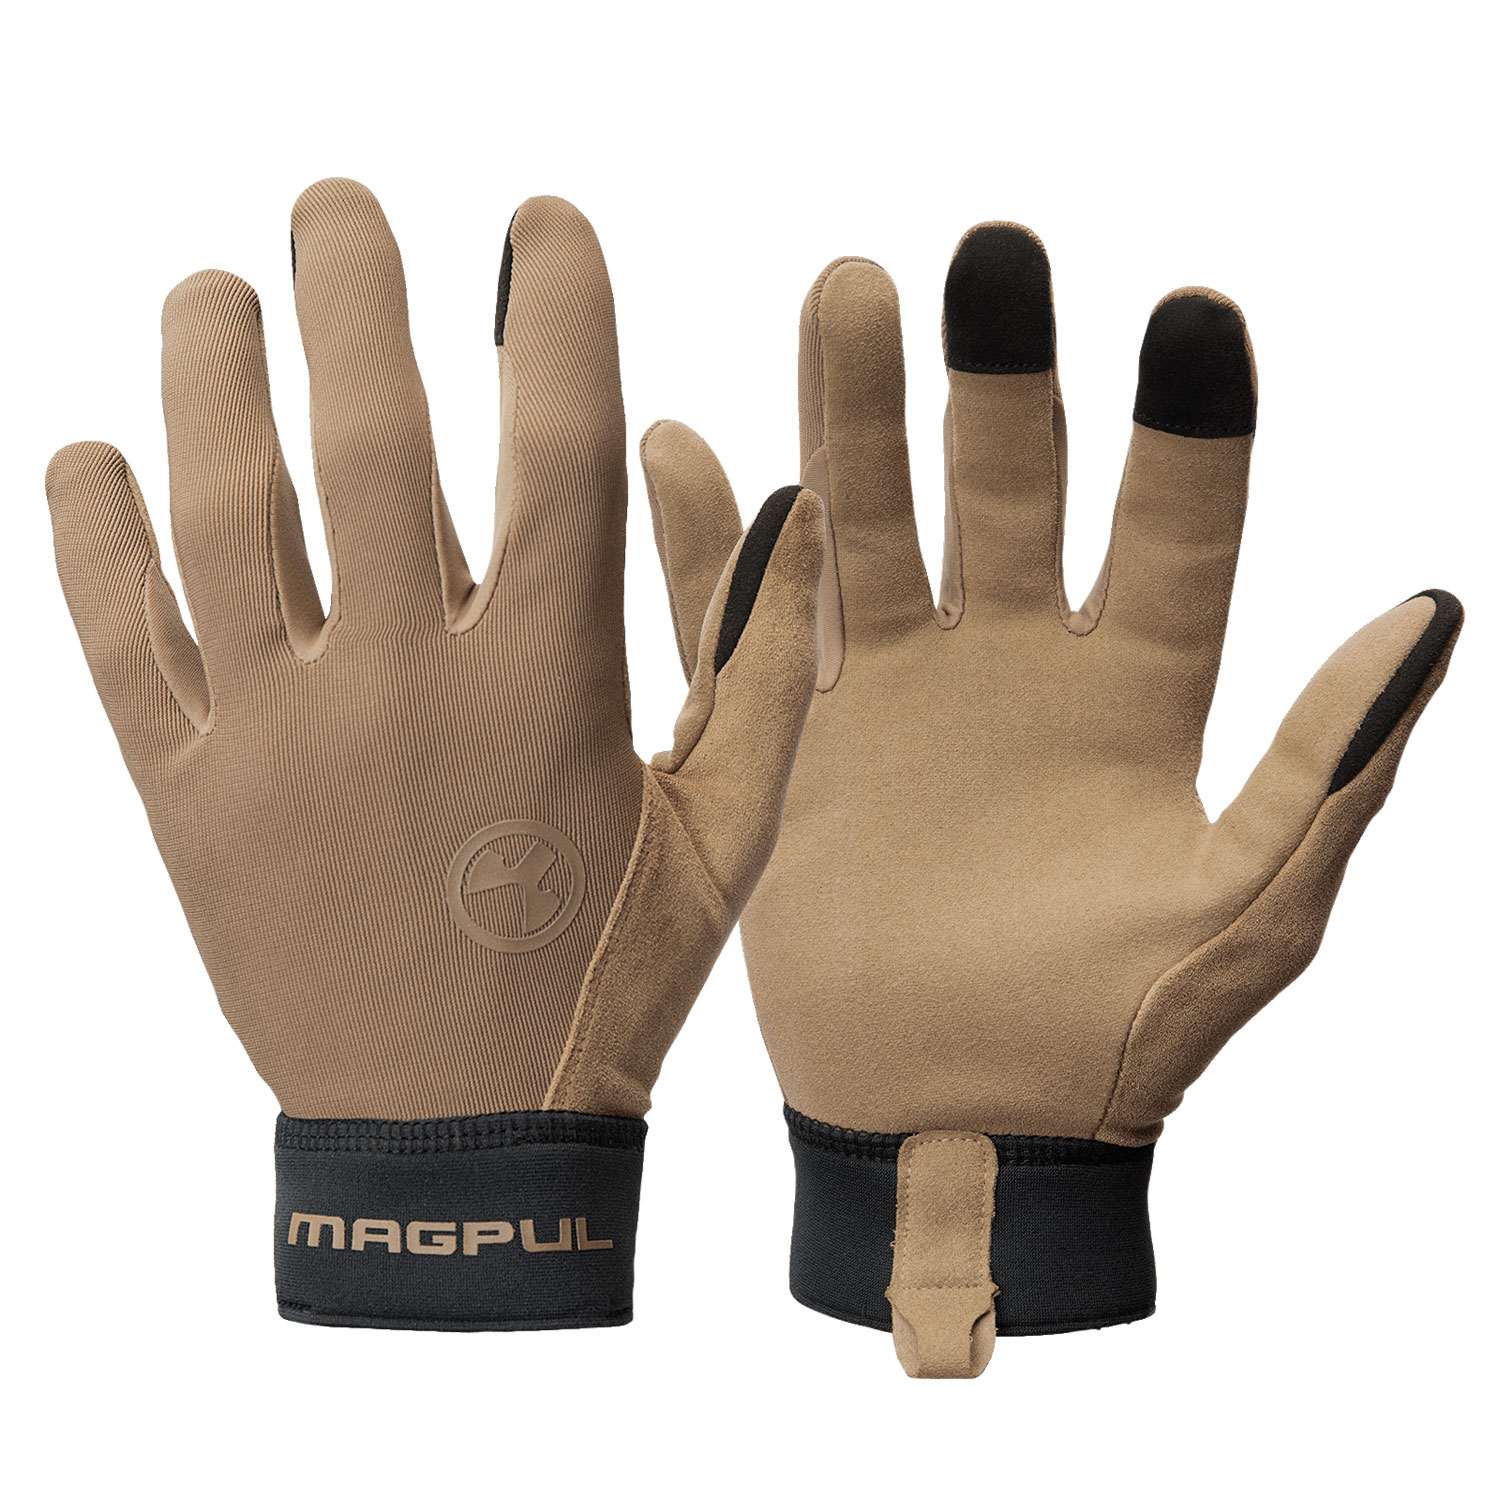 Magpul MAG1014-251 Technical Glove 2.0 Small Coyote